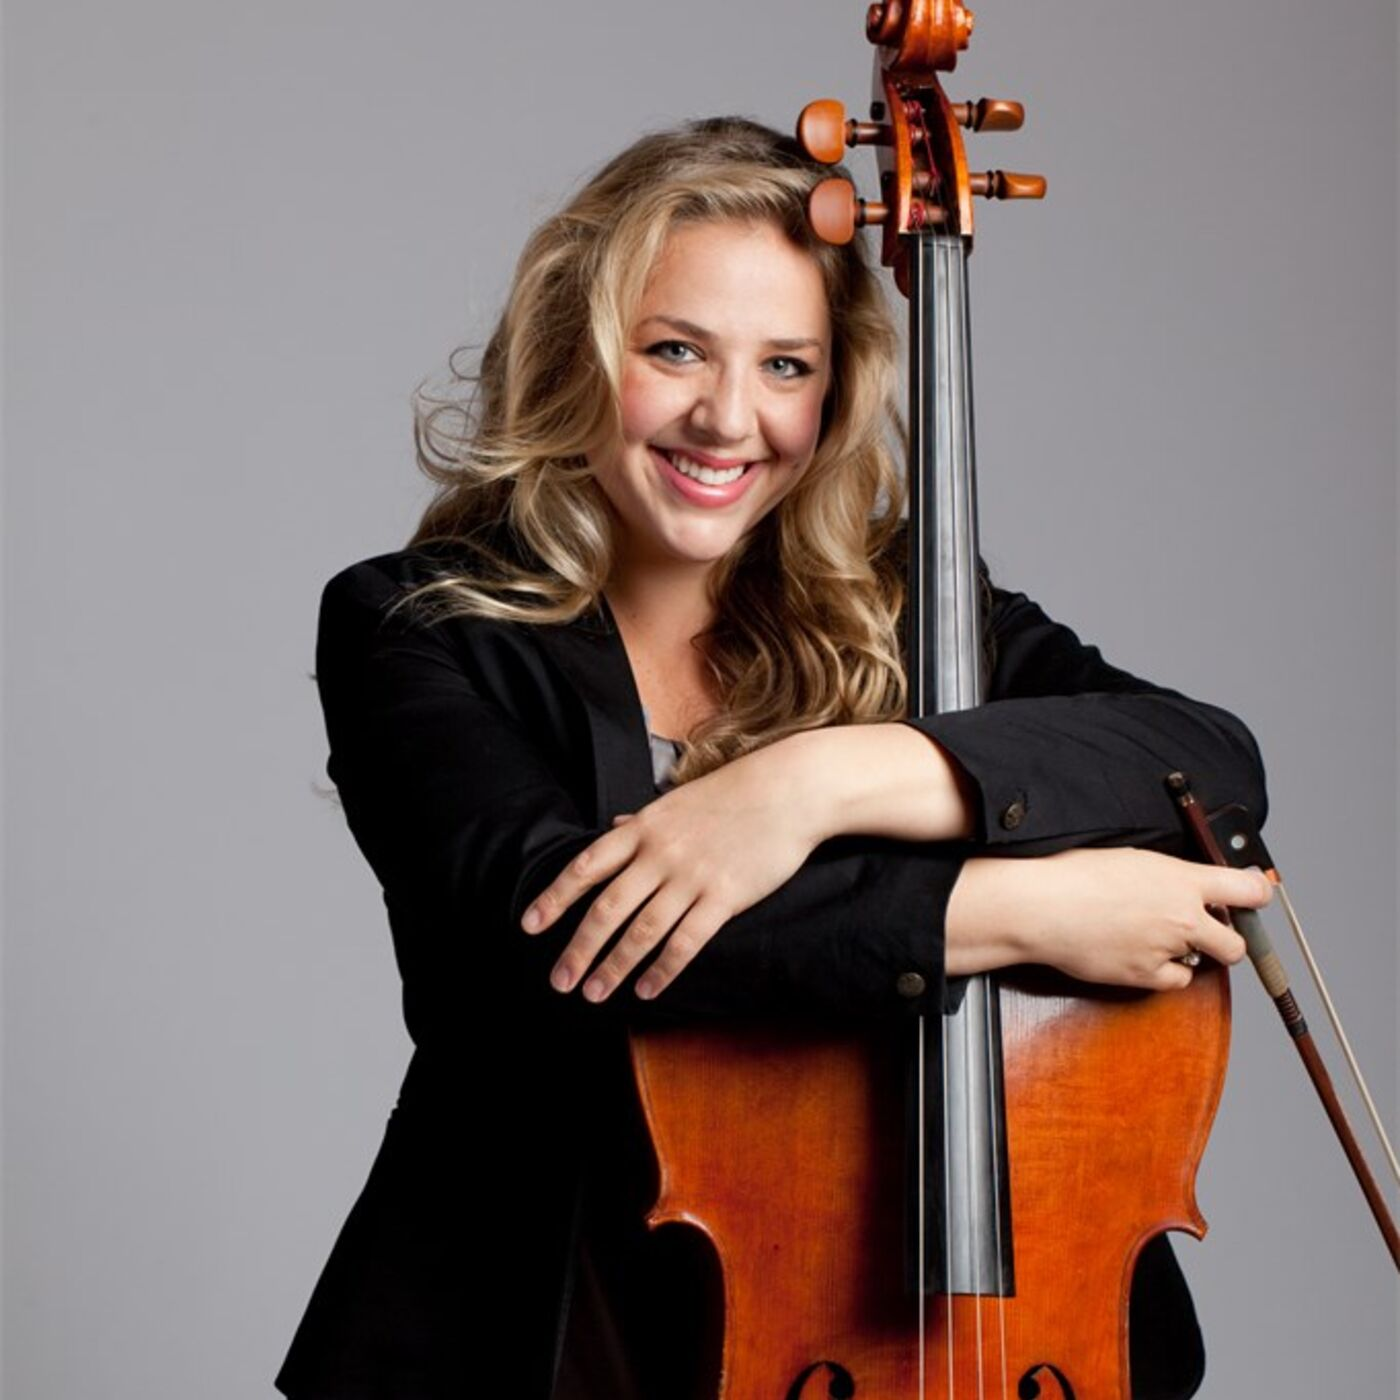 Natalie Helm, Principal Cellist of the Sarasota Orchestra, Joins the Club